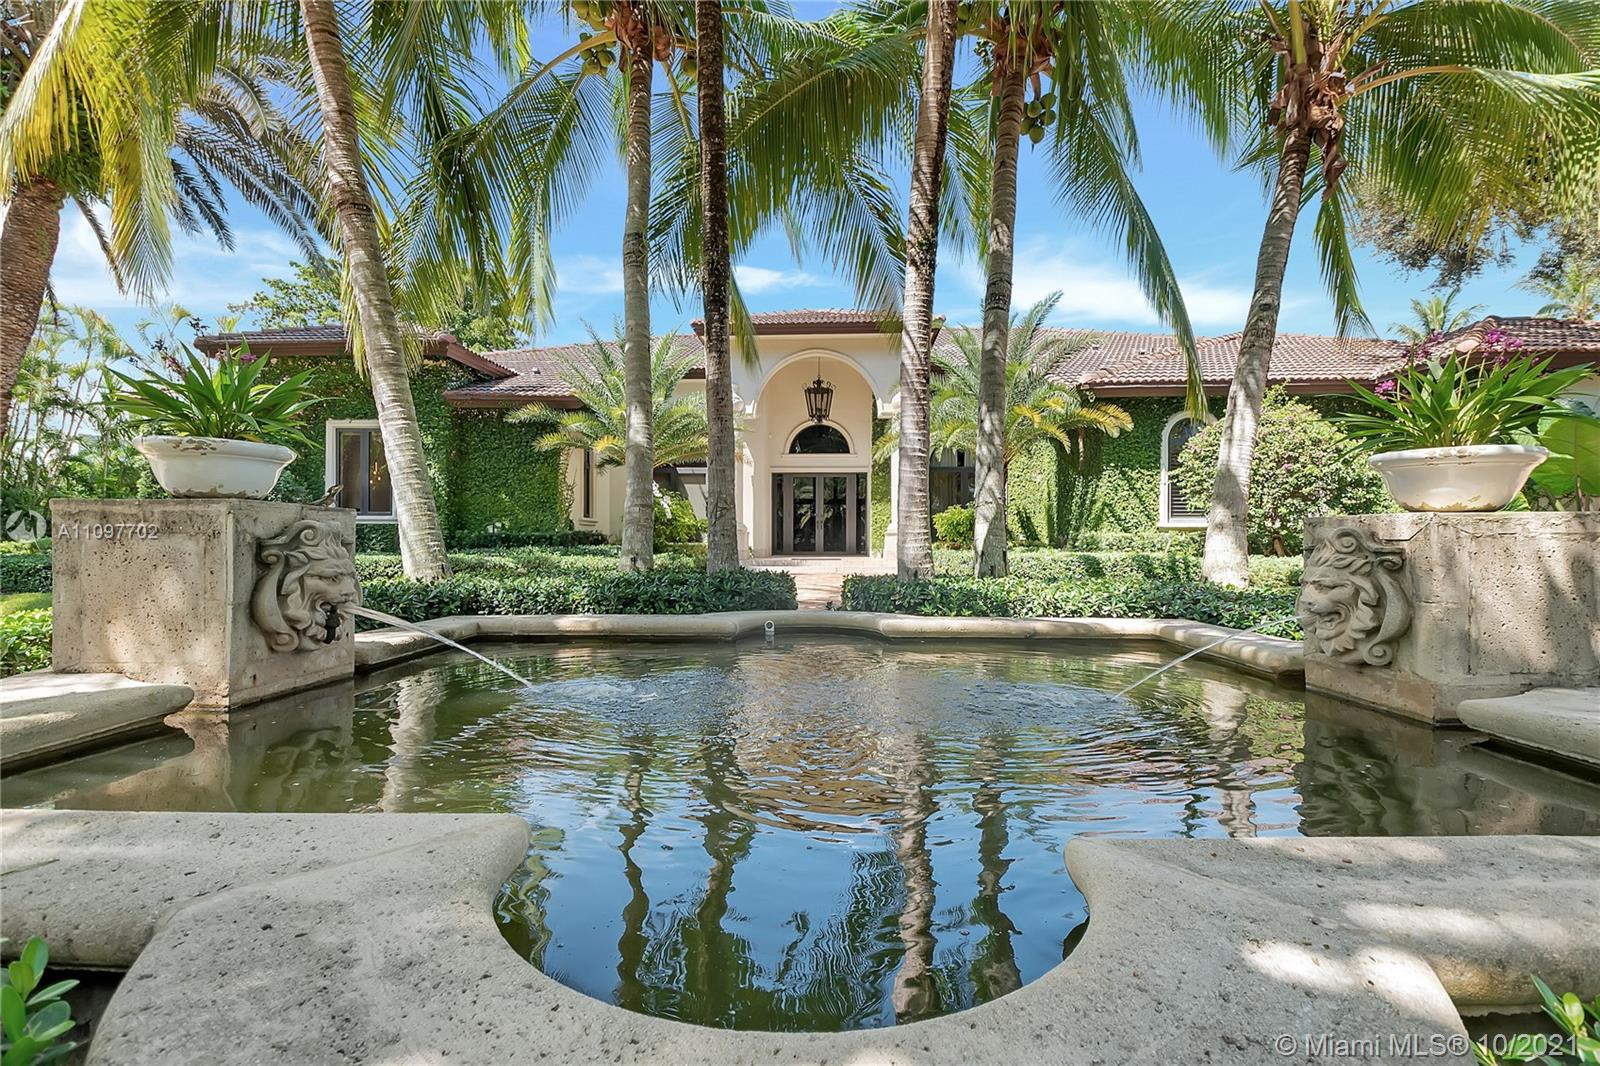 Prominent gated residence on palm-lined street in north Pinecrest. One-story estate features soaring ceilings & great distribution of space. Manicured backyard is a SoFL oasis with luxe pool/spa area, summer kitchen, koi pond, grassy area for playing & mature privacy trees. Dine-in chef's kitchen for entertaining opens to breakfast nook & large family room.  Enjoy covered al fresco dining and your summer kitchen. Elegant pool and decking invite you outside.  Huge master w/sitting room. Top-line finishes and features include impact windows/doors, whole-house generator, new garage doors, new lighting system, new closets, repainted on the interior, new exterior cameras, new A/C units & new washer/dryer/dishwasher. Top-rated Pinecrest Elementary school district and easy access to shops & US-1.